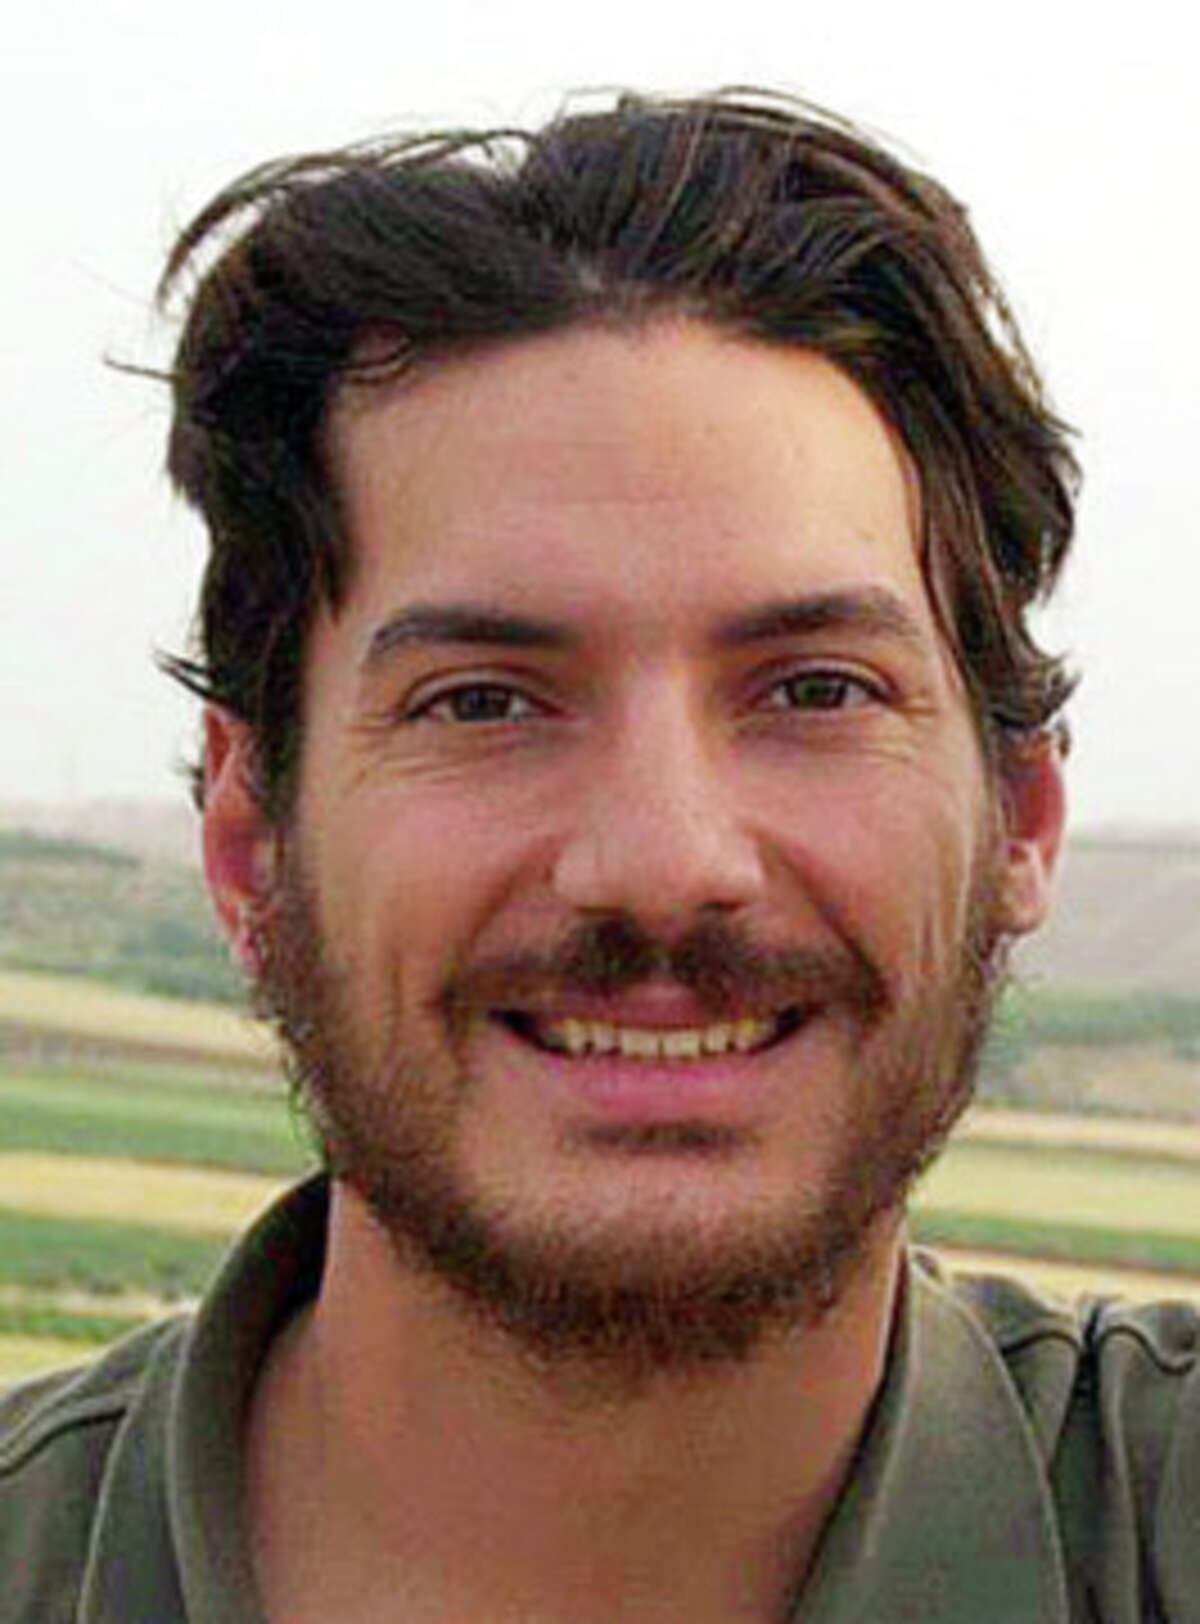 Austin Tice, a freelance journalist for McClatchy and other news outlets, has vanished in Syria. Tice was last heard from in mid-August 2012. (Courtesy of Tice family/MCT)